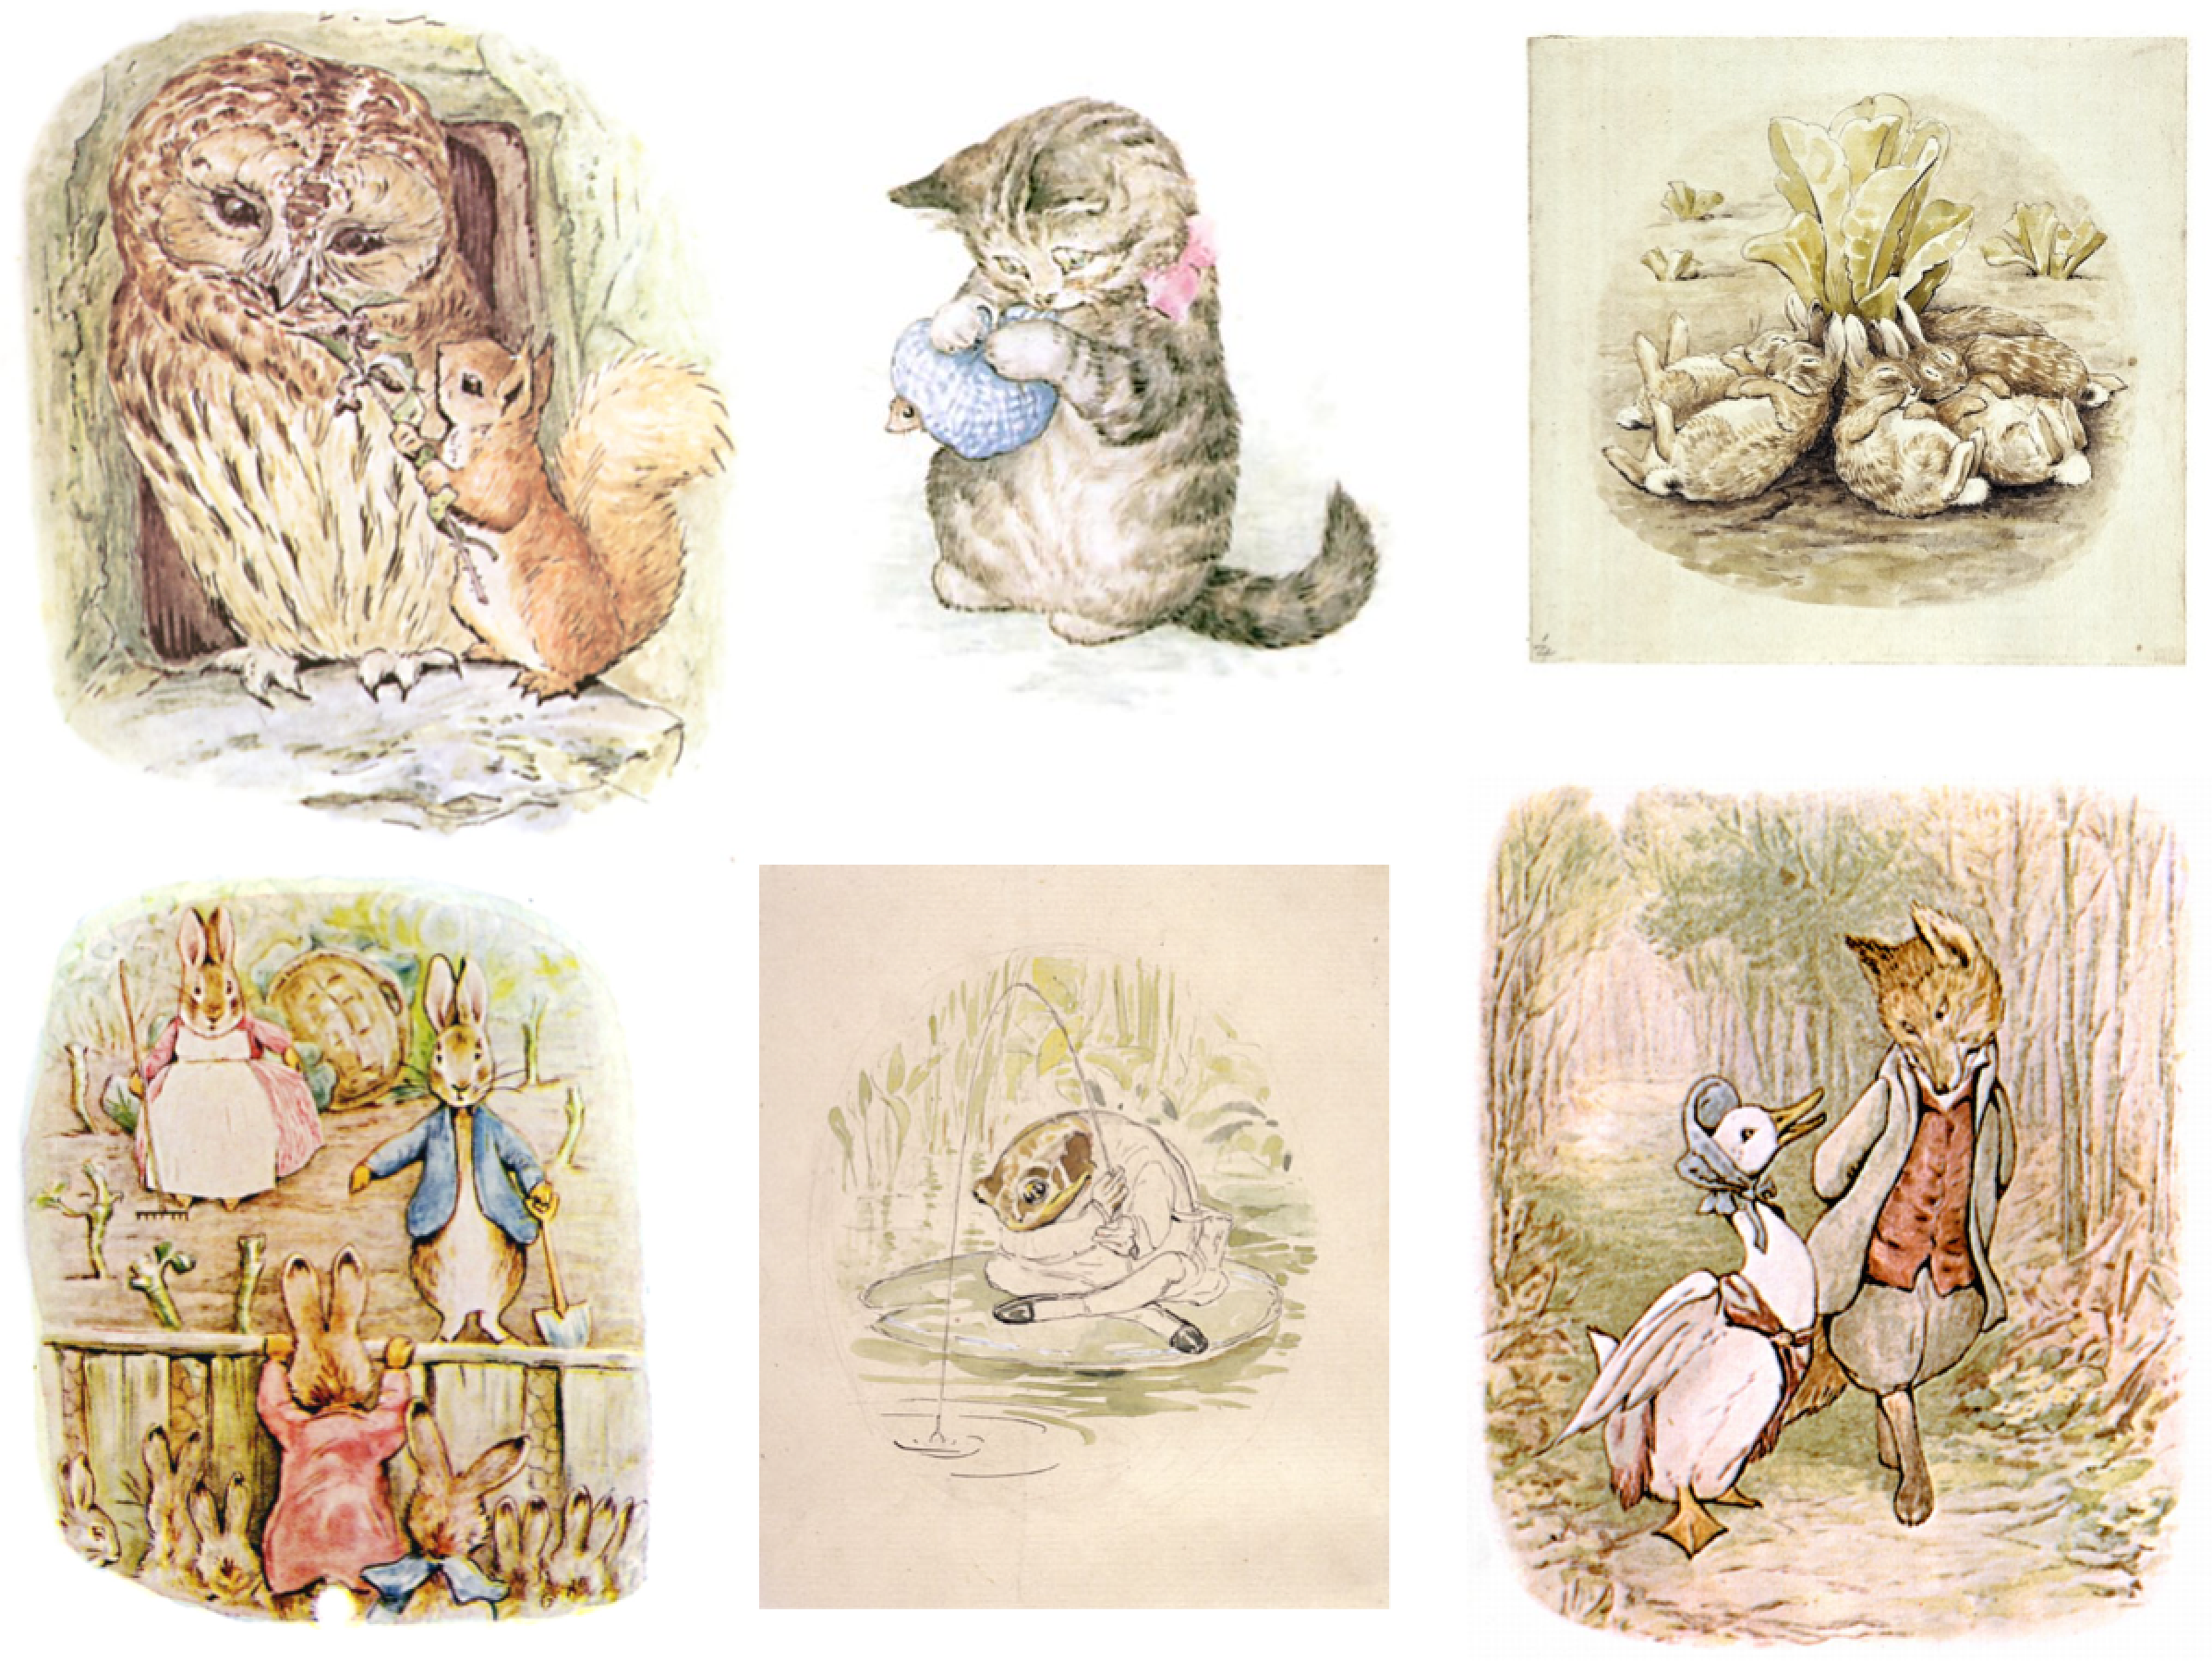 Top: Squirrel Nutkin,Miss Moppet, The Flopsy Bunnies                                           Bottom: Peter Rabbit, Jeremy Fisher, Jemima Puddle-Duck  By Beatrix Potter - The Gutenberg Project [Public Domain], via Wikimedia Commons